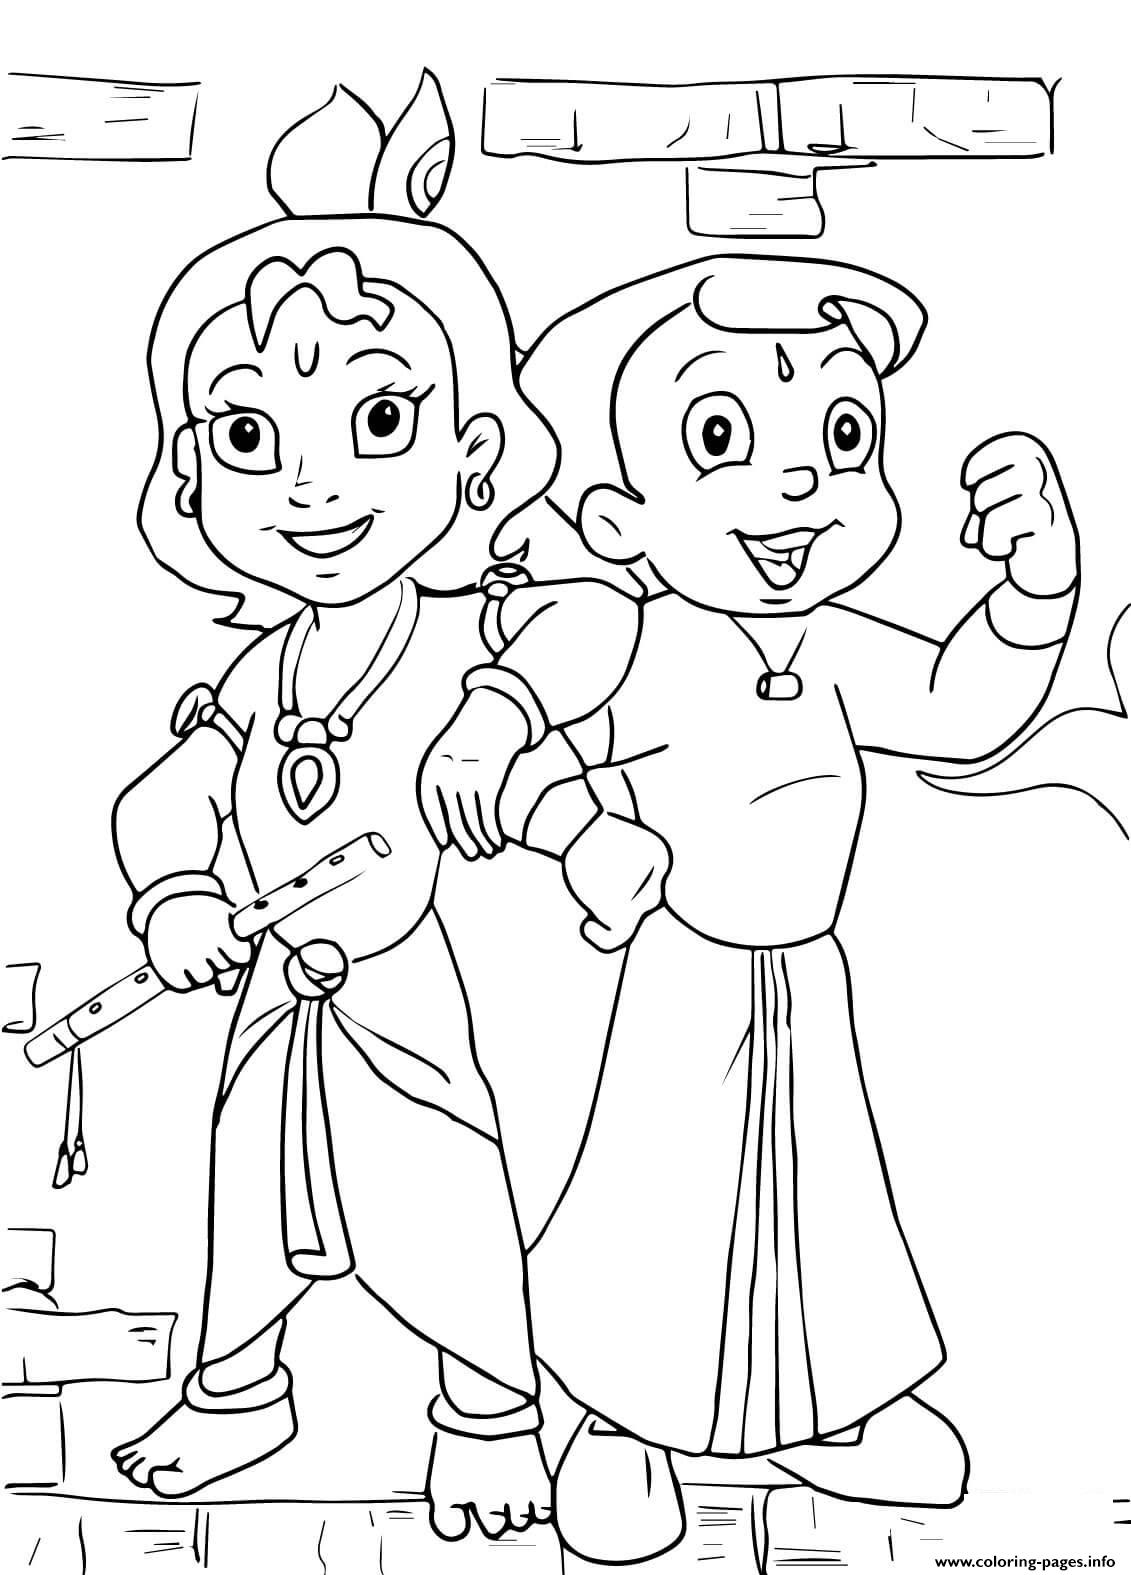 Chhota Bheem And Krishna Images Coloring Pages Printable